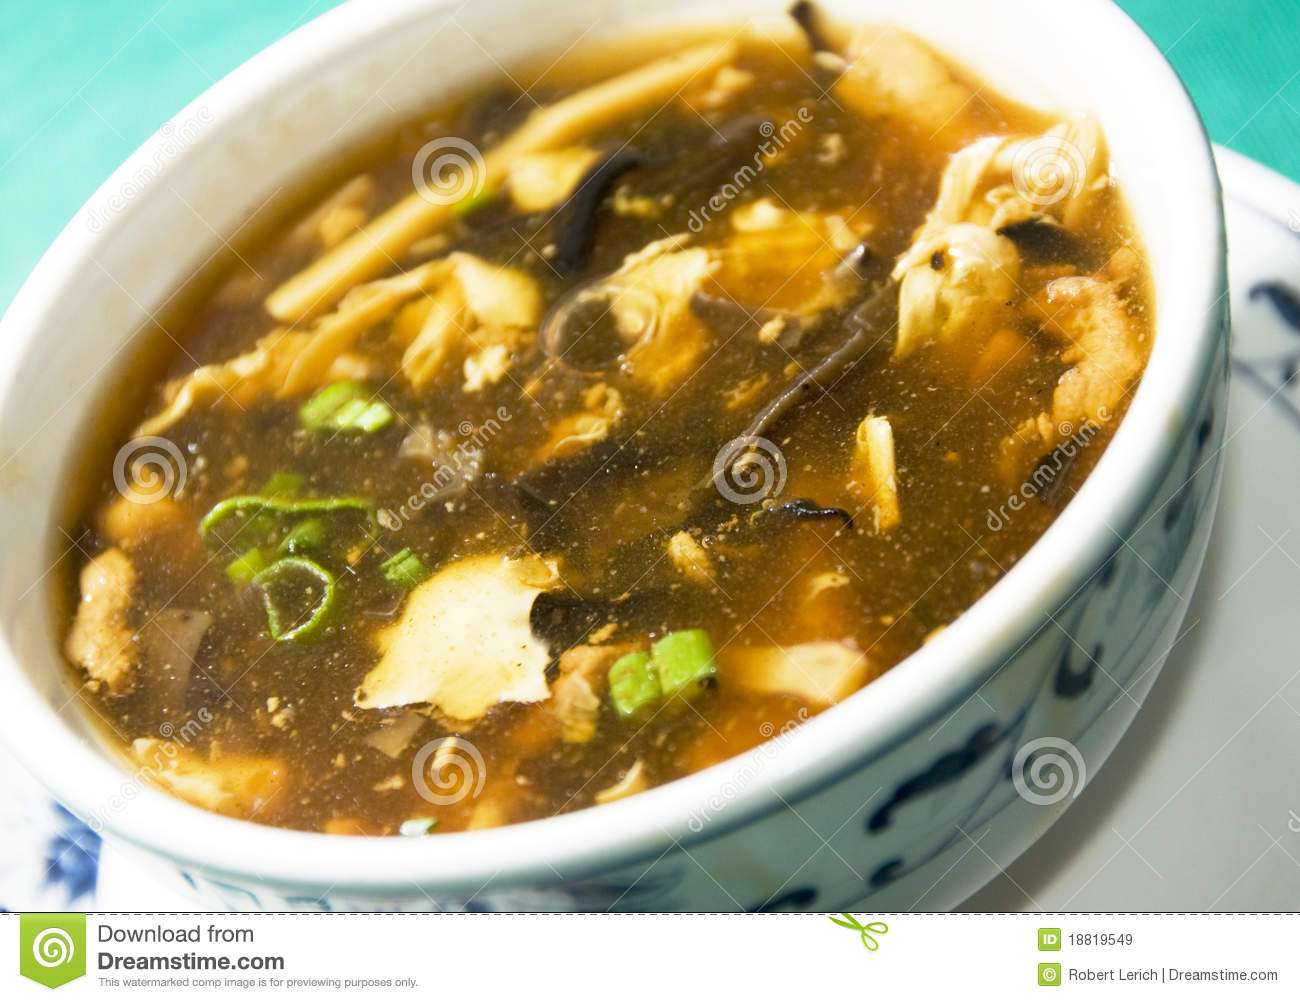 Chinese hot and sour soup vegetables scallions tofu spicy soup.